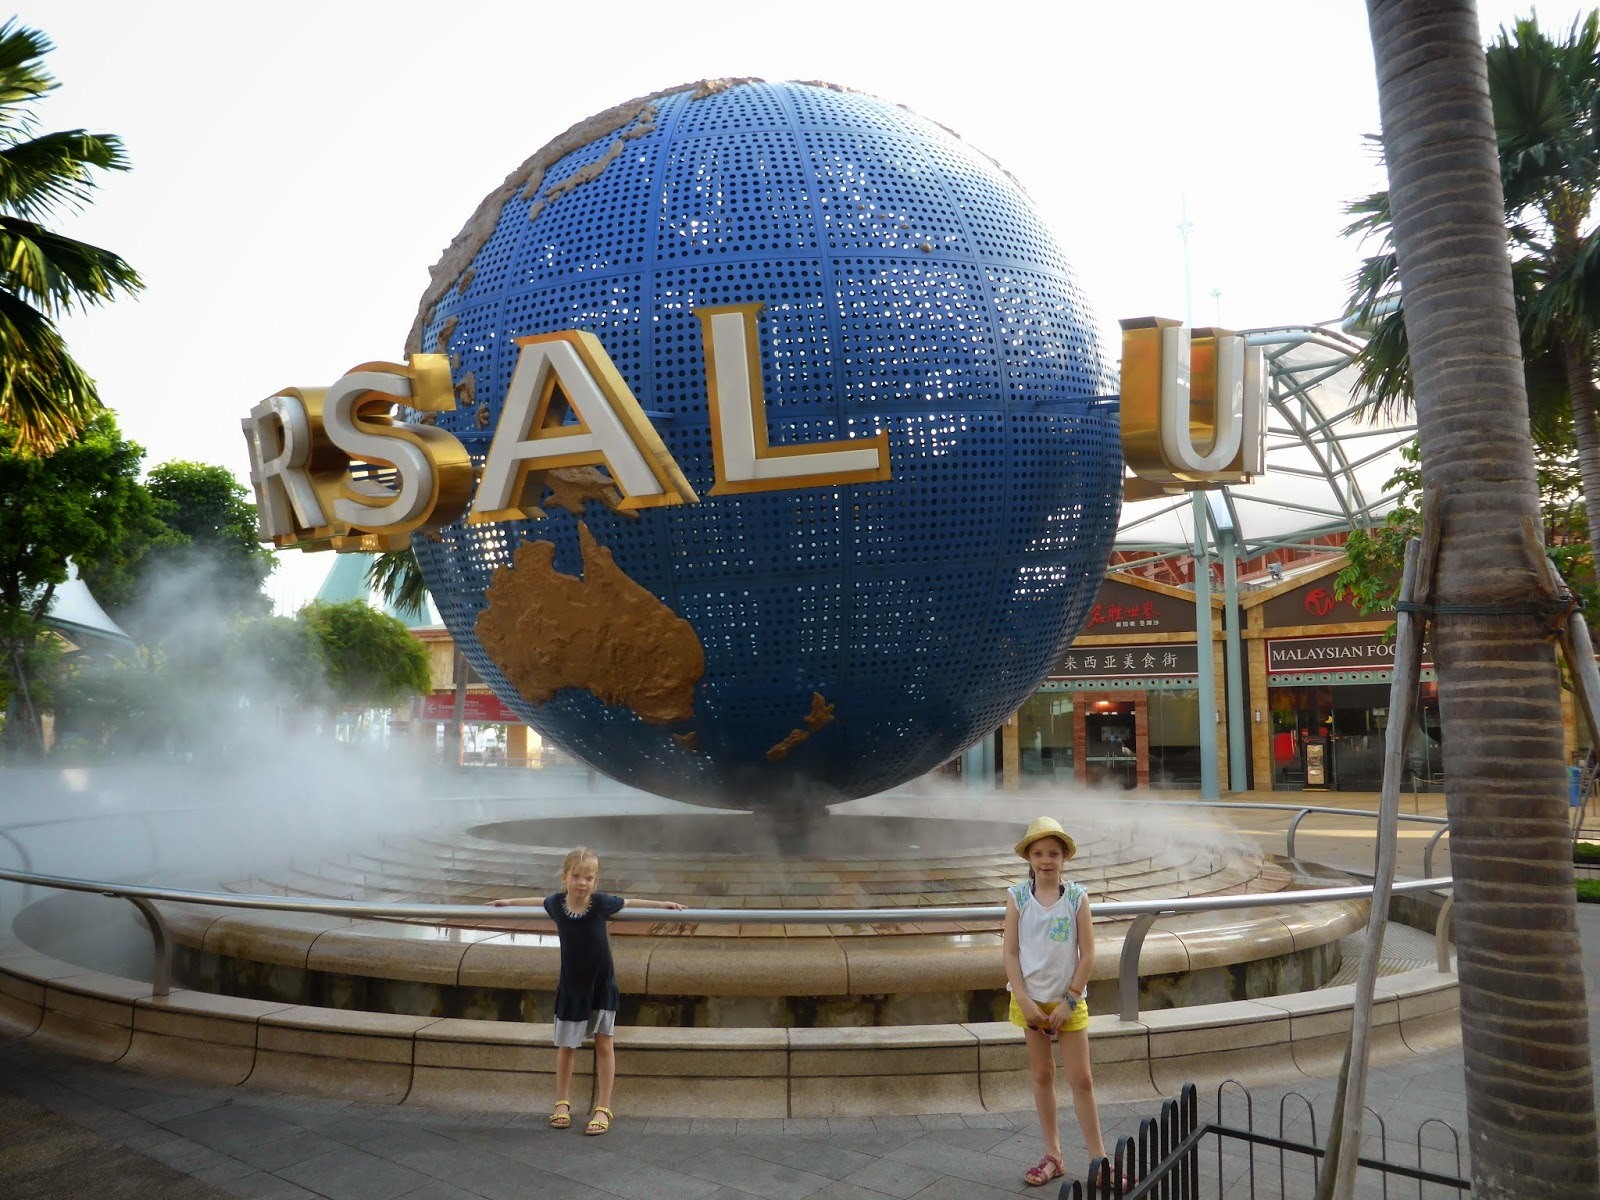 Universal studios singapore for families